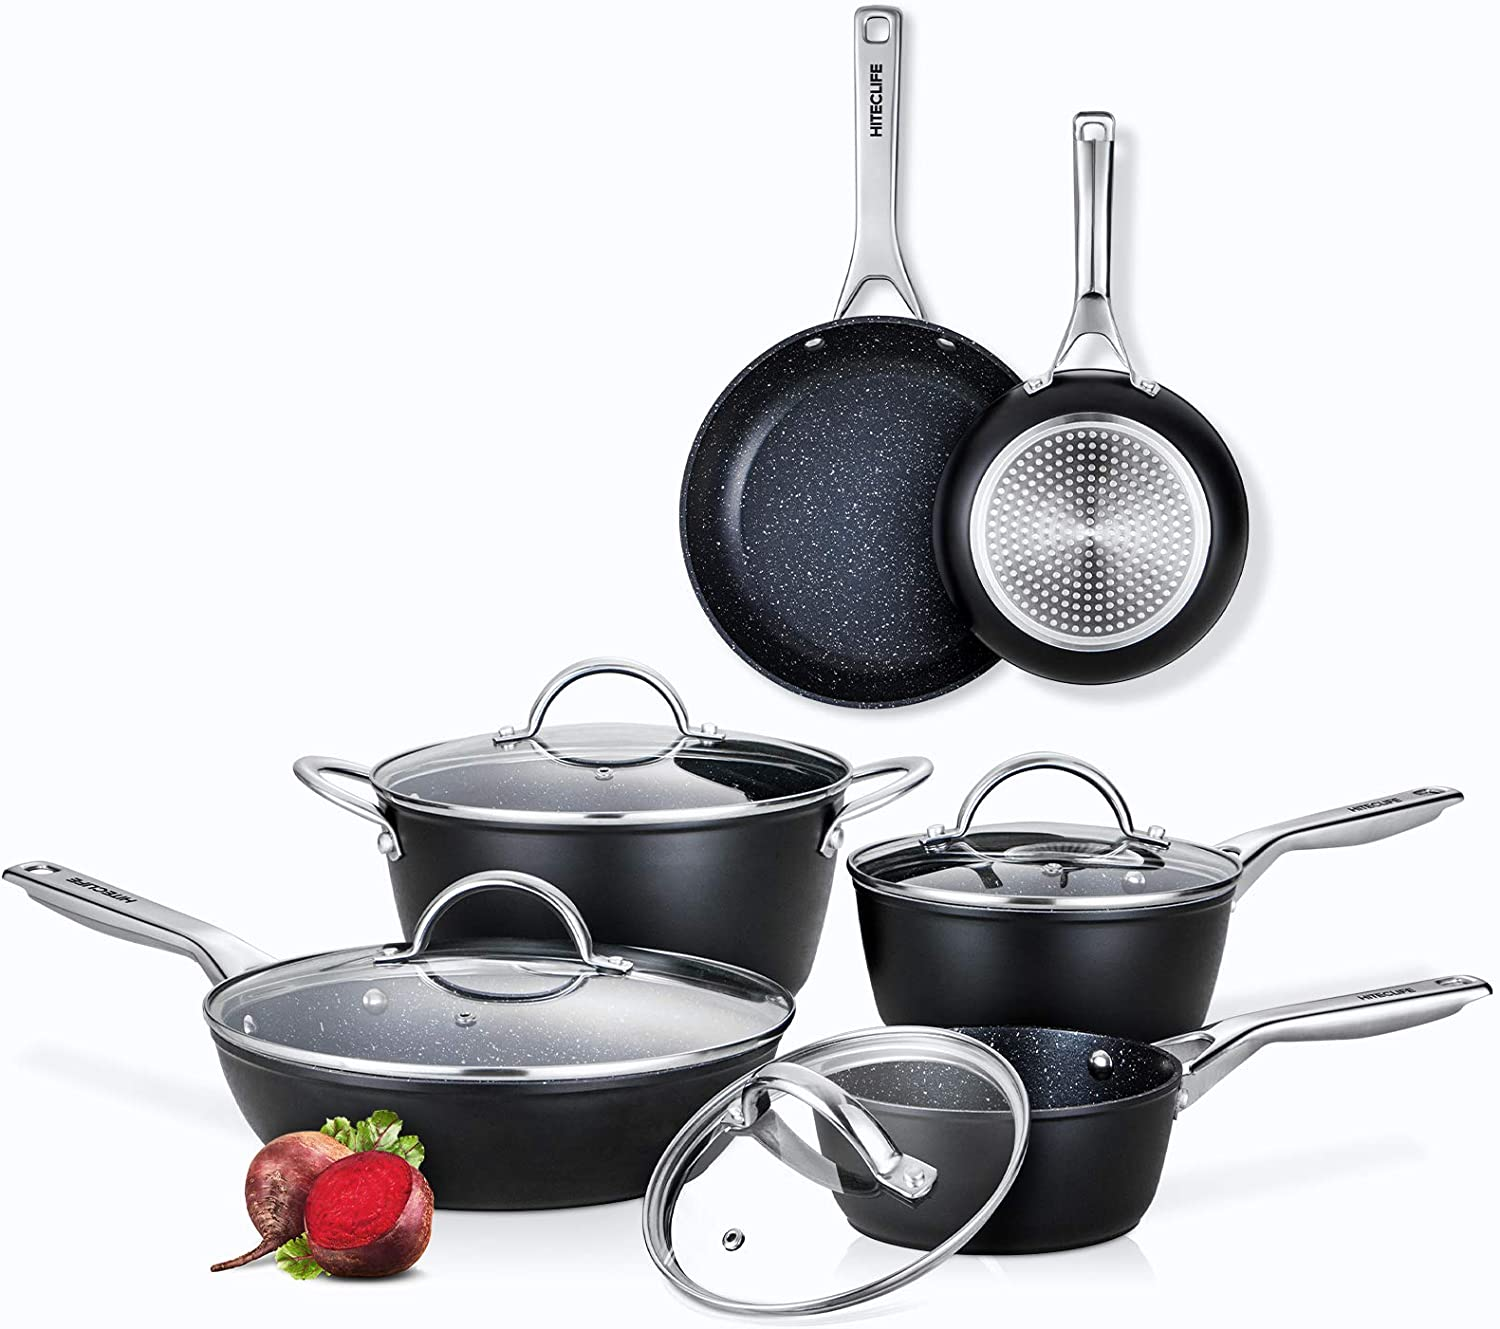 Home Kitchenware with Saucepan 3-Piece Non-Stick Cookware Pot Set with lid Eco Friendly